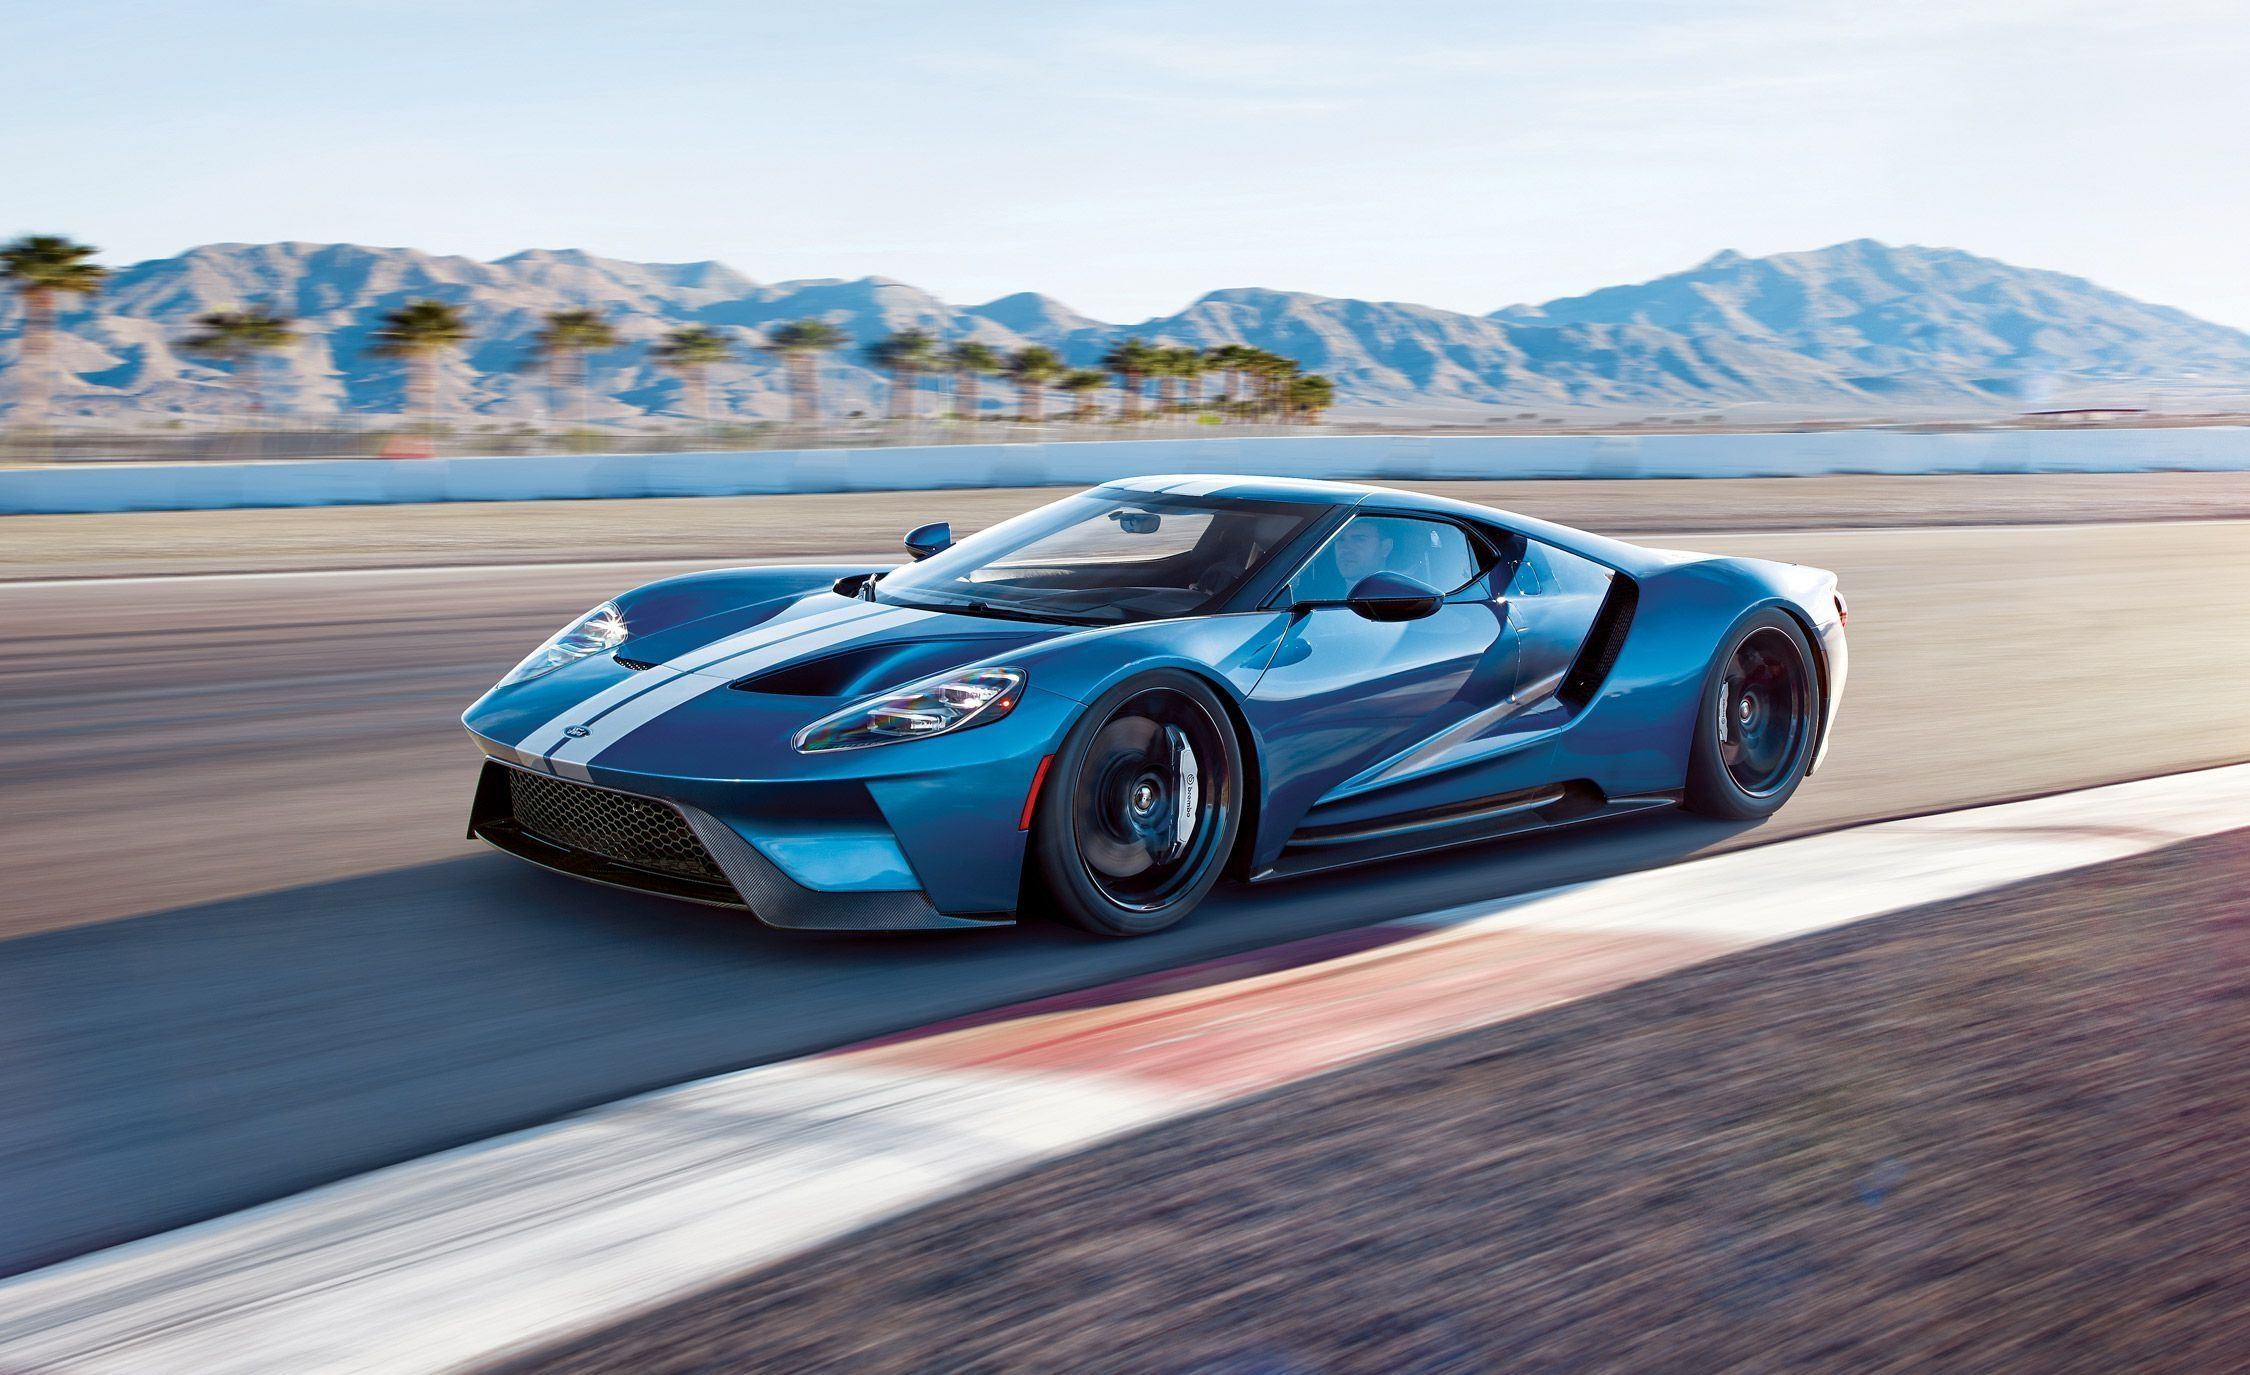 The 2018 Ford Gt40 Concept Car Price 2019 Ford Gt Ford Gt 2017 Ford Gt40